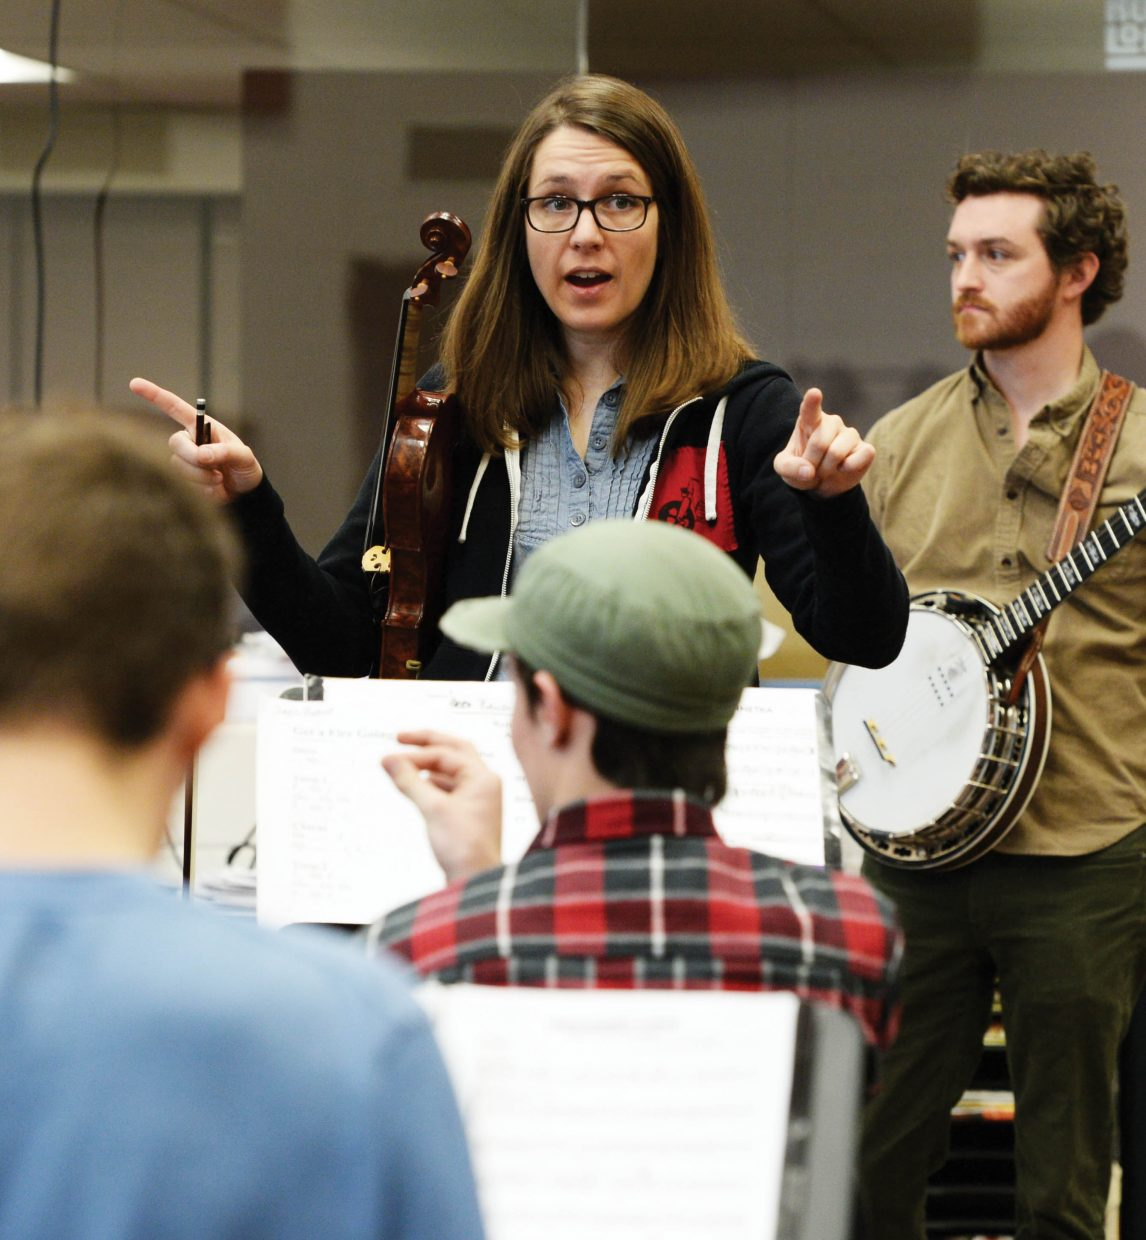 Trout Steak Revival fiddle player Bevin Foley talks with the Steamboat Springs High School jazz band while preparing for a summer concert at Strings Music Festival.